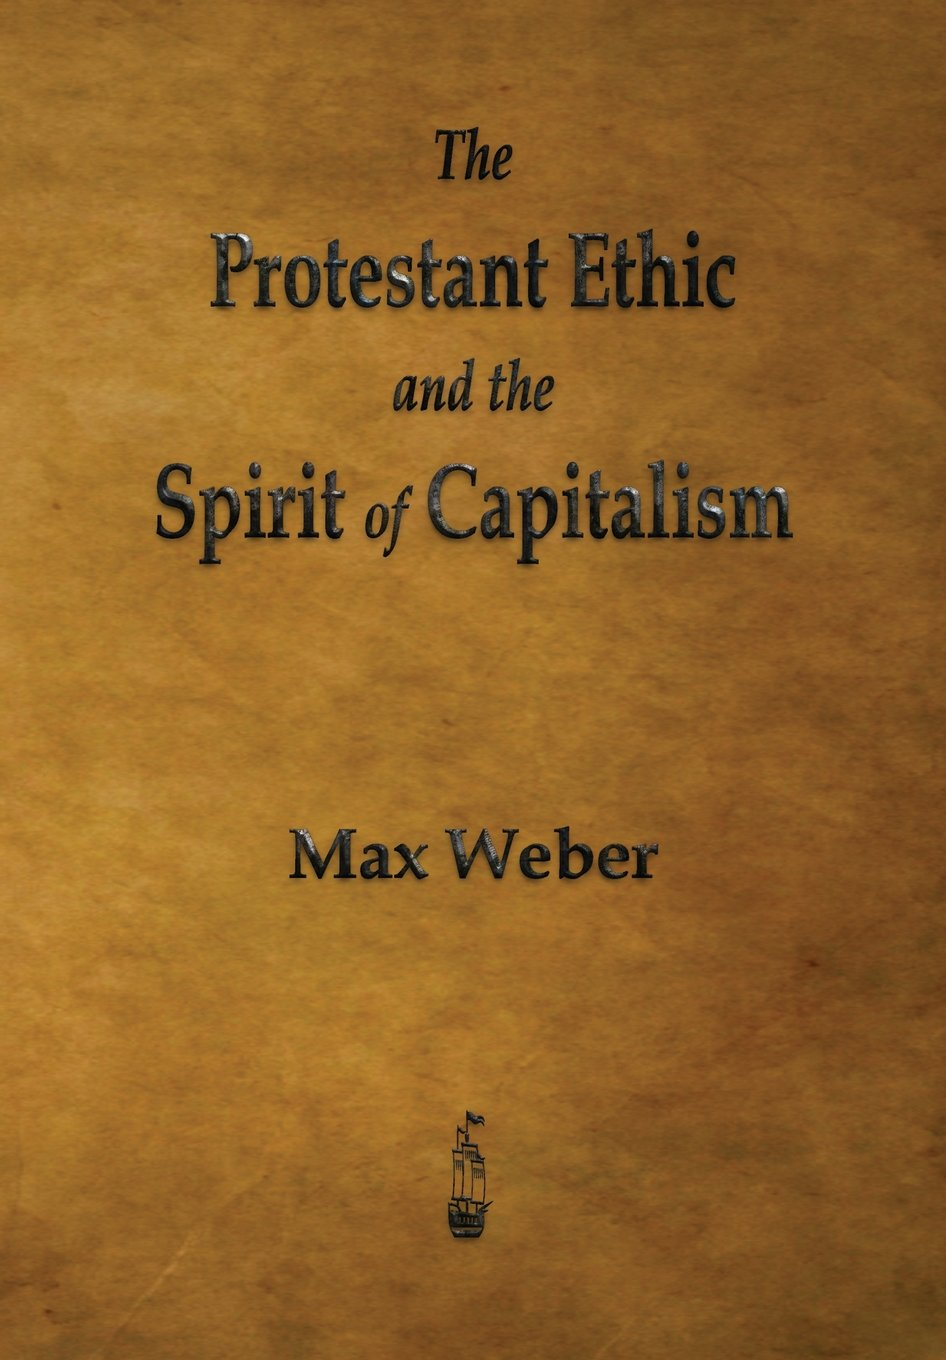 the protestant ethic and the spirit of capitalism max weber the protestant ethic and the spirit of capitalism max weber 9781603866040 com books